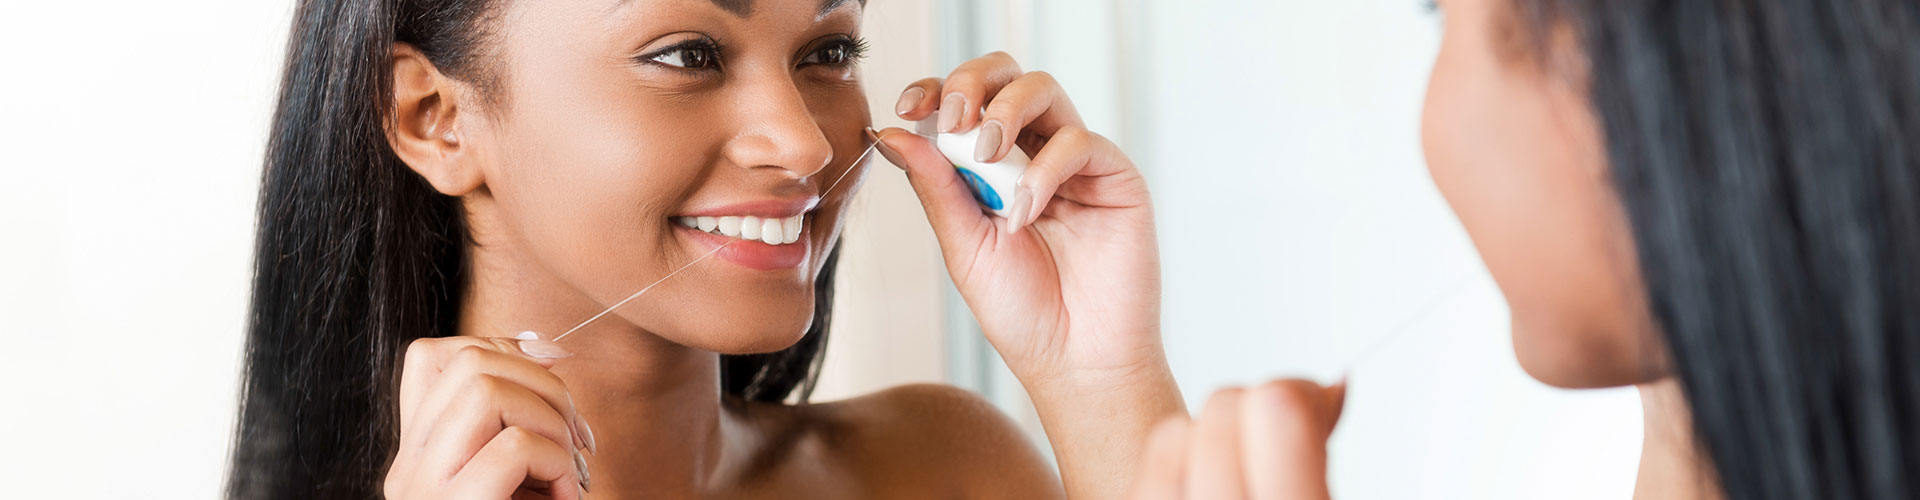 A woman flossing infront of mirror